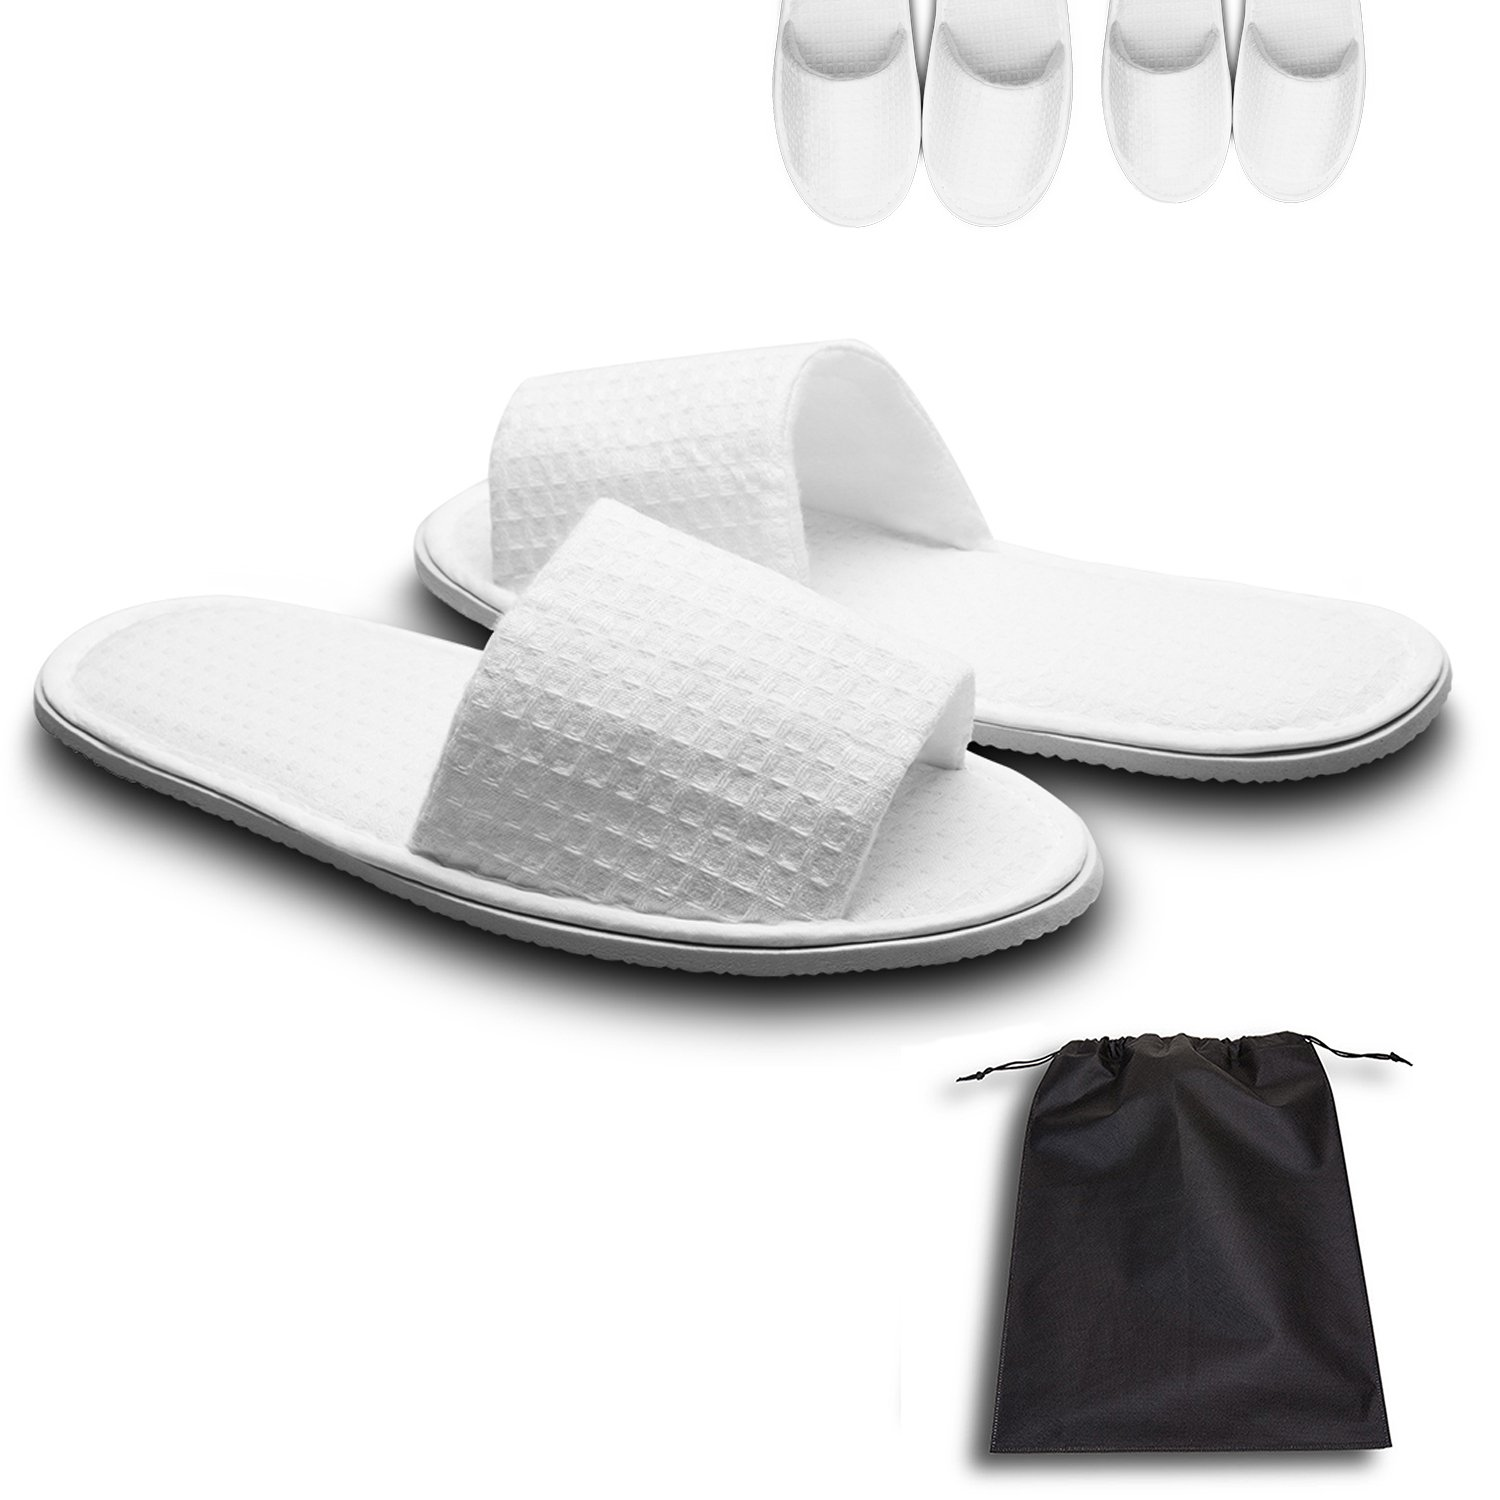 echoapple 10 Pairs of Waffle Open Toe White Slippers-One Size Fit Most Men and Women for Spa, Party Guest, Hotel and Travel, Washable and Non-Disposable (Large, White-10 Pairs) (Large, White-10 Pairs) by echoapple